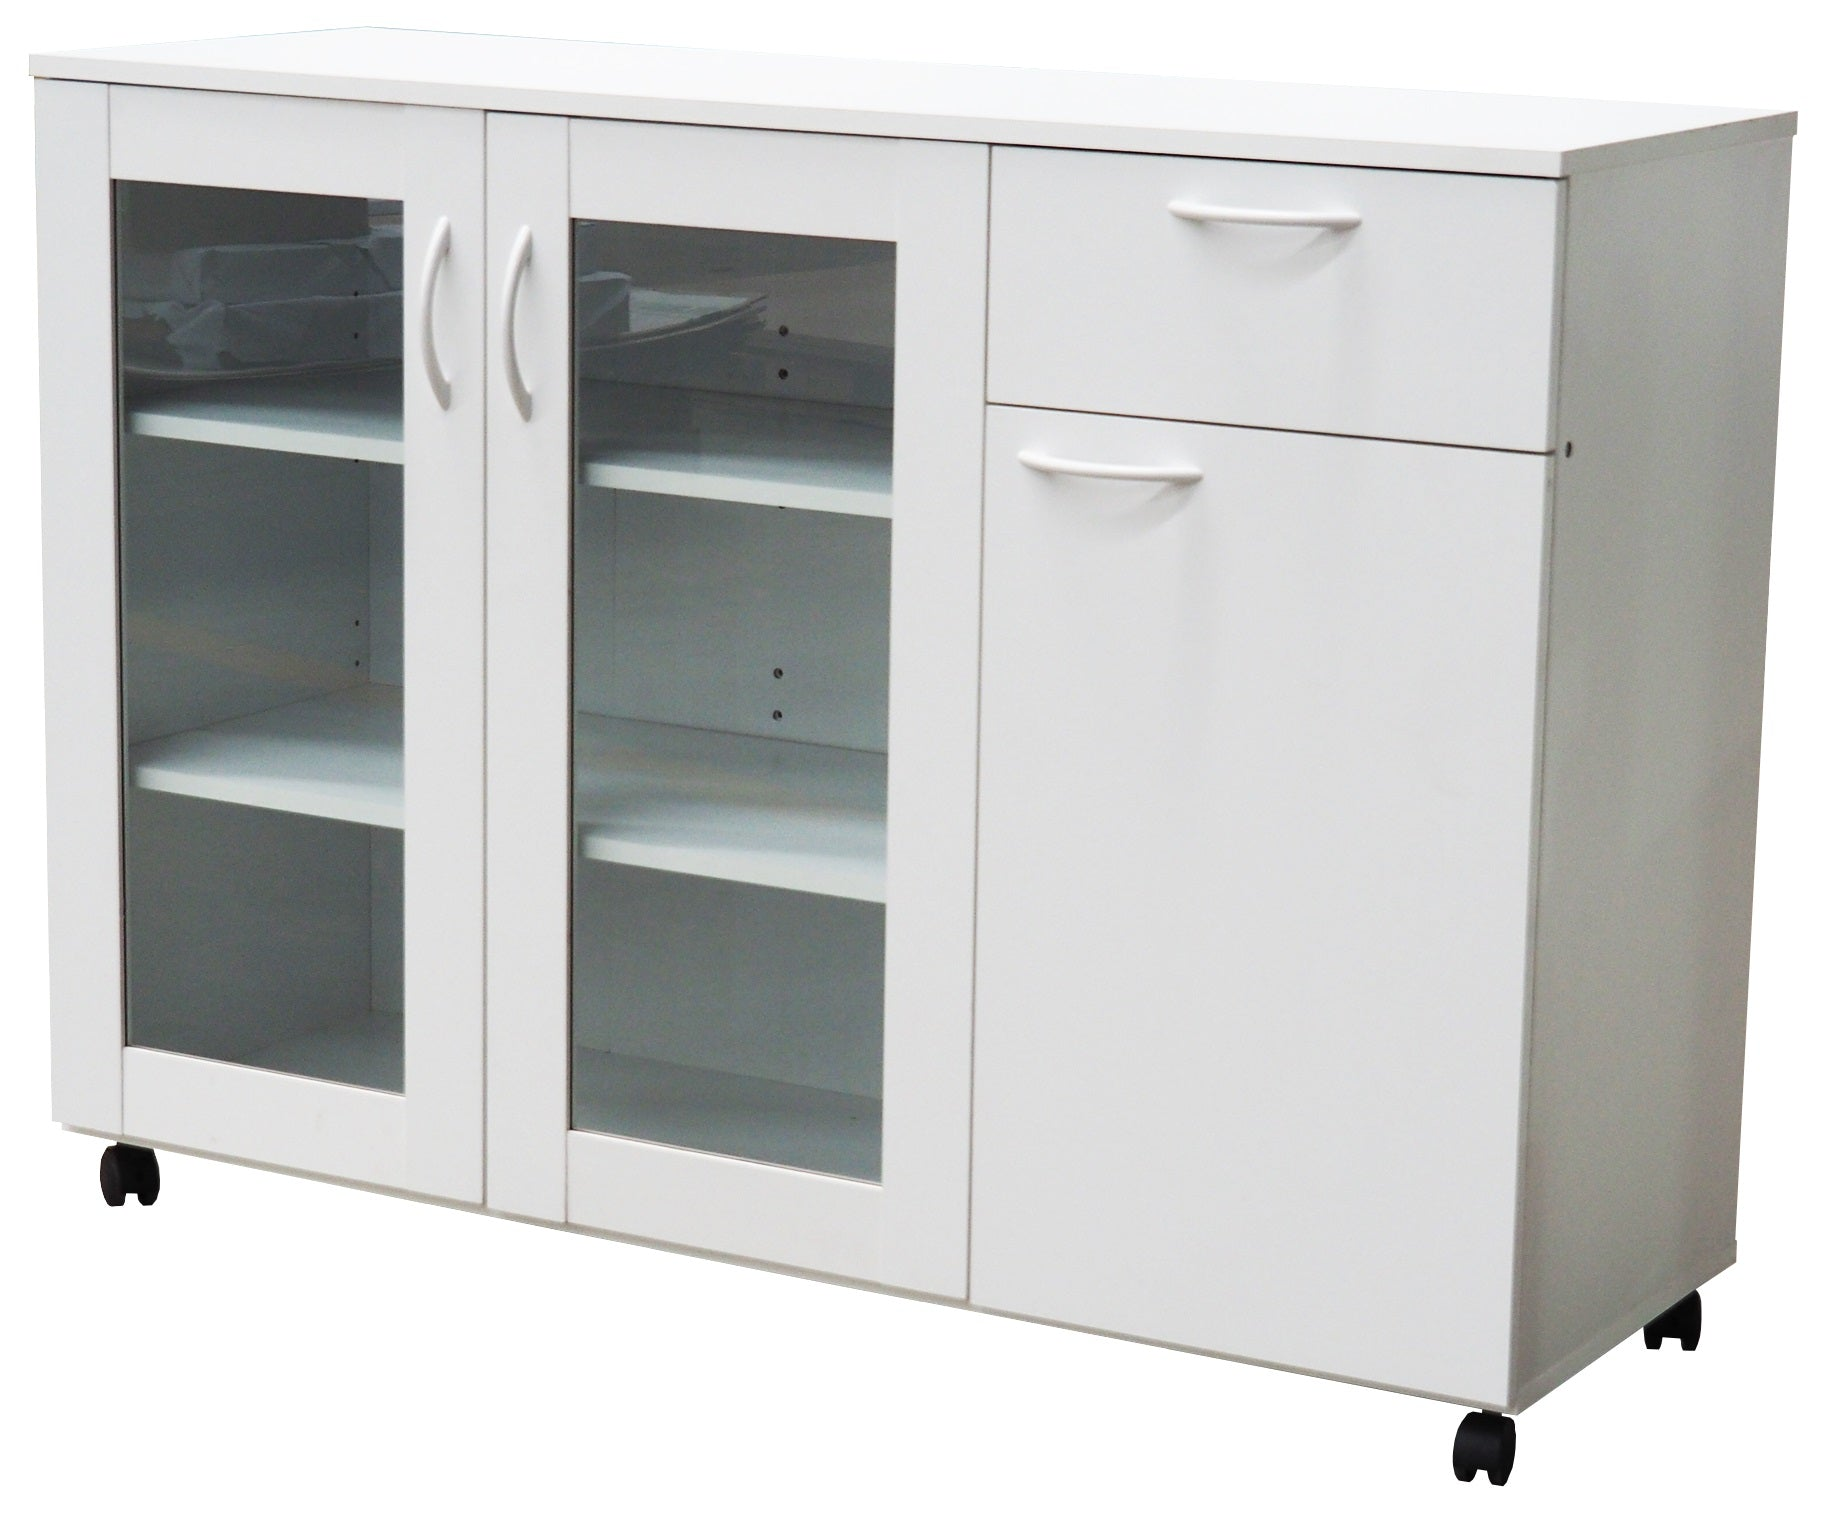 Picture of: Gremlin Wheeled Kitchen Storage Sideboard Buffet Cabinet With Adjustable Shelves Drawer White Wood Glass Contemporary Pilaster Designs